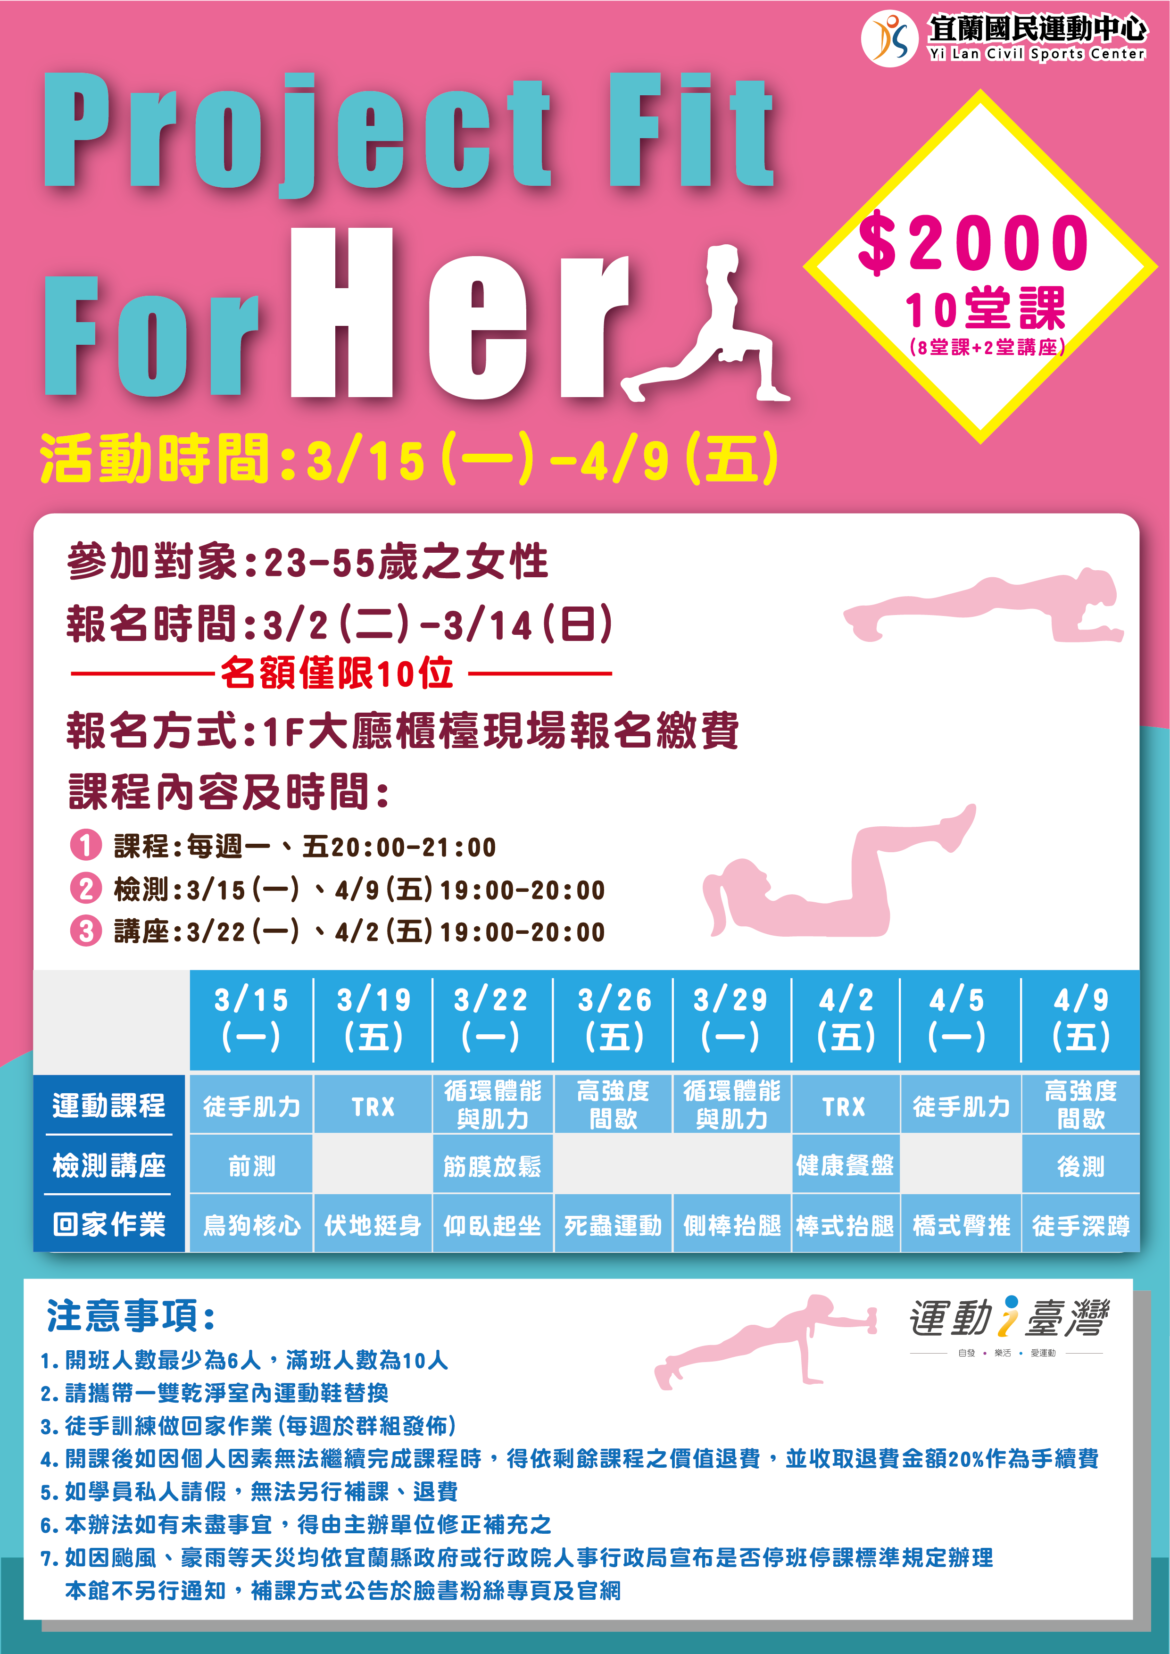 【Project Fit For Her-女性專屬肌力課程】